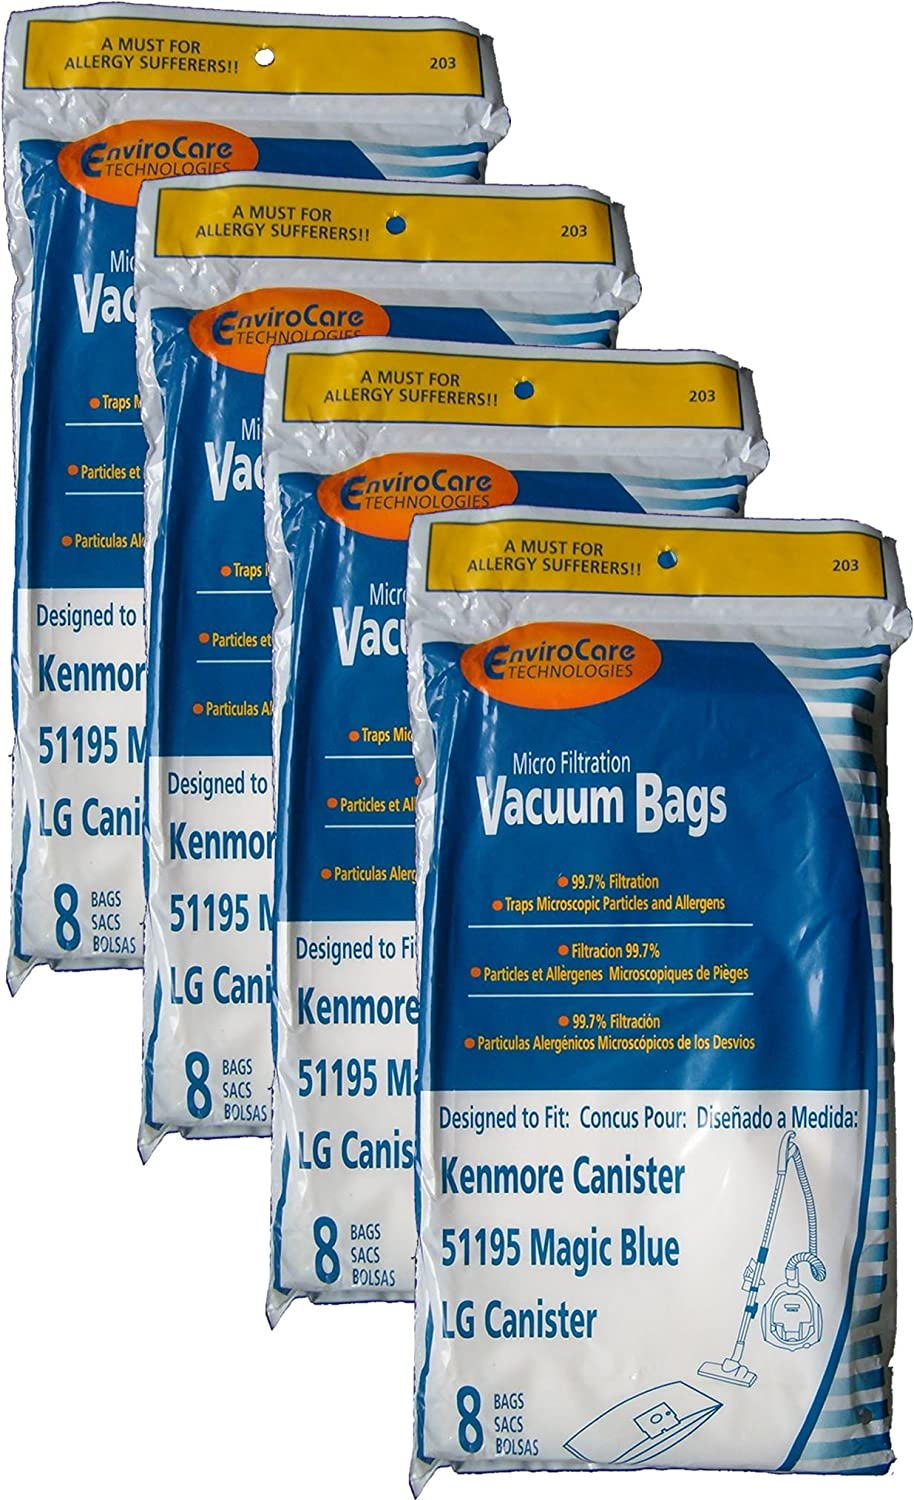 32 Kenmore Type M Sears 51195 Magic Blue LG Vacuum Bags, Ultracare, Canister Vacuum Cleaners, 20-51195, 609323, 21195, 21295, 24195, 21495